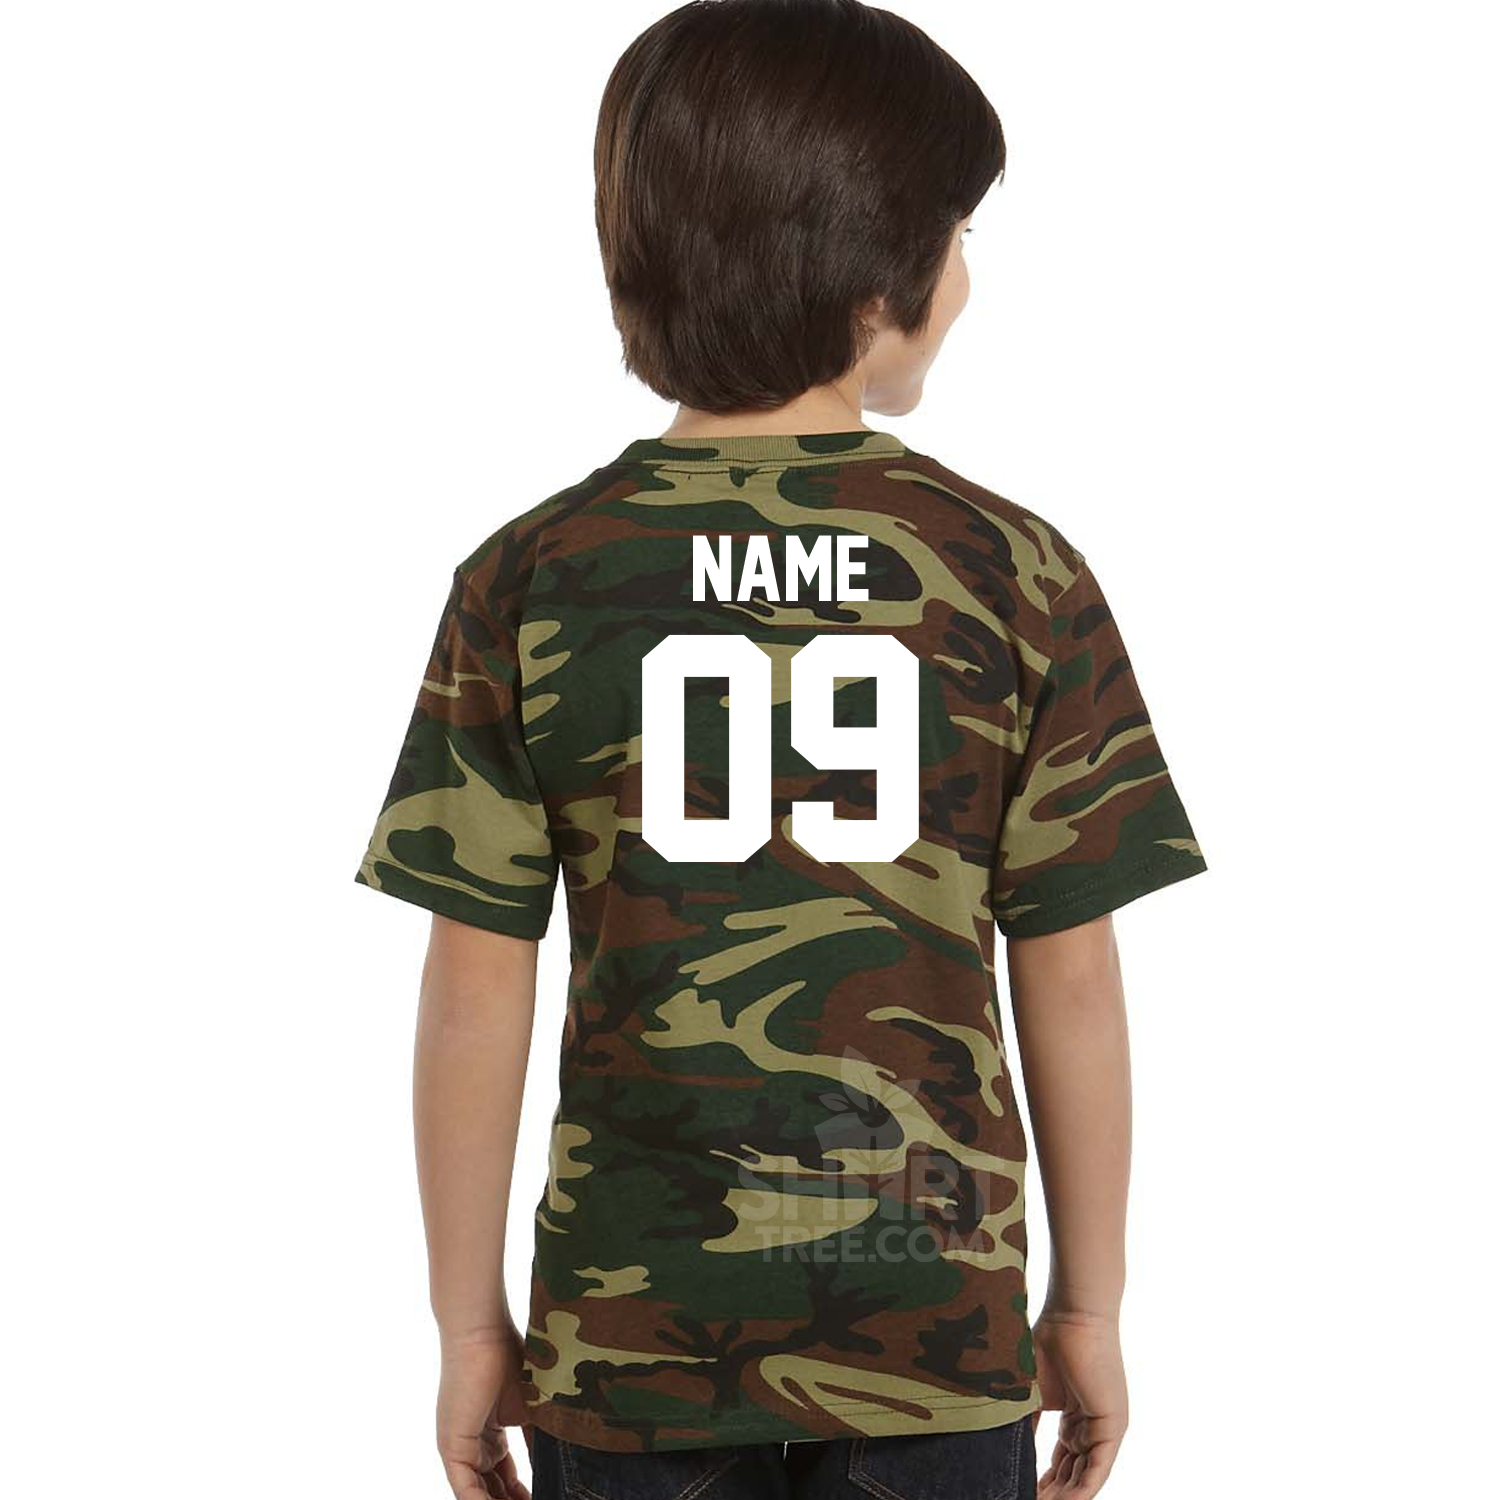 Personalized Limited Edition Youth Camo Birthday Shirt